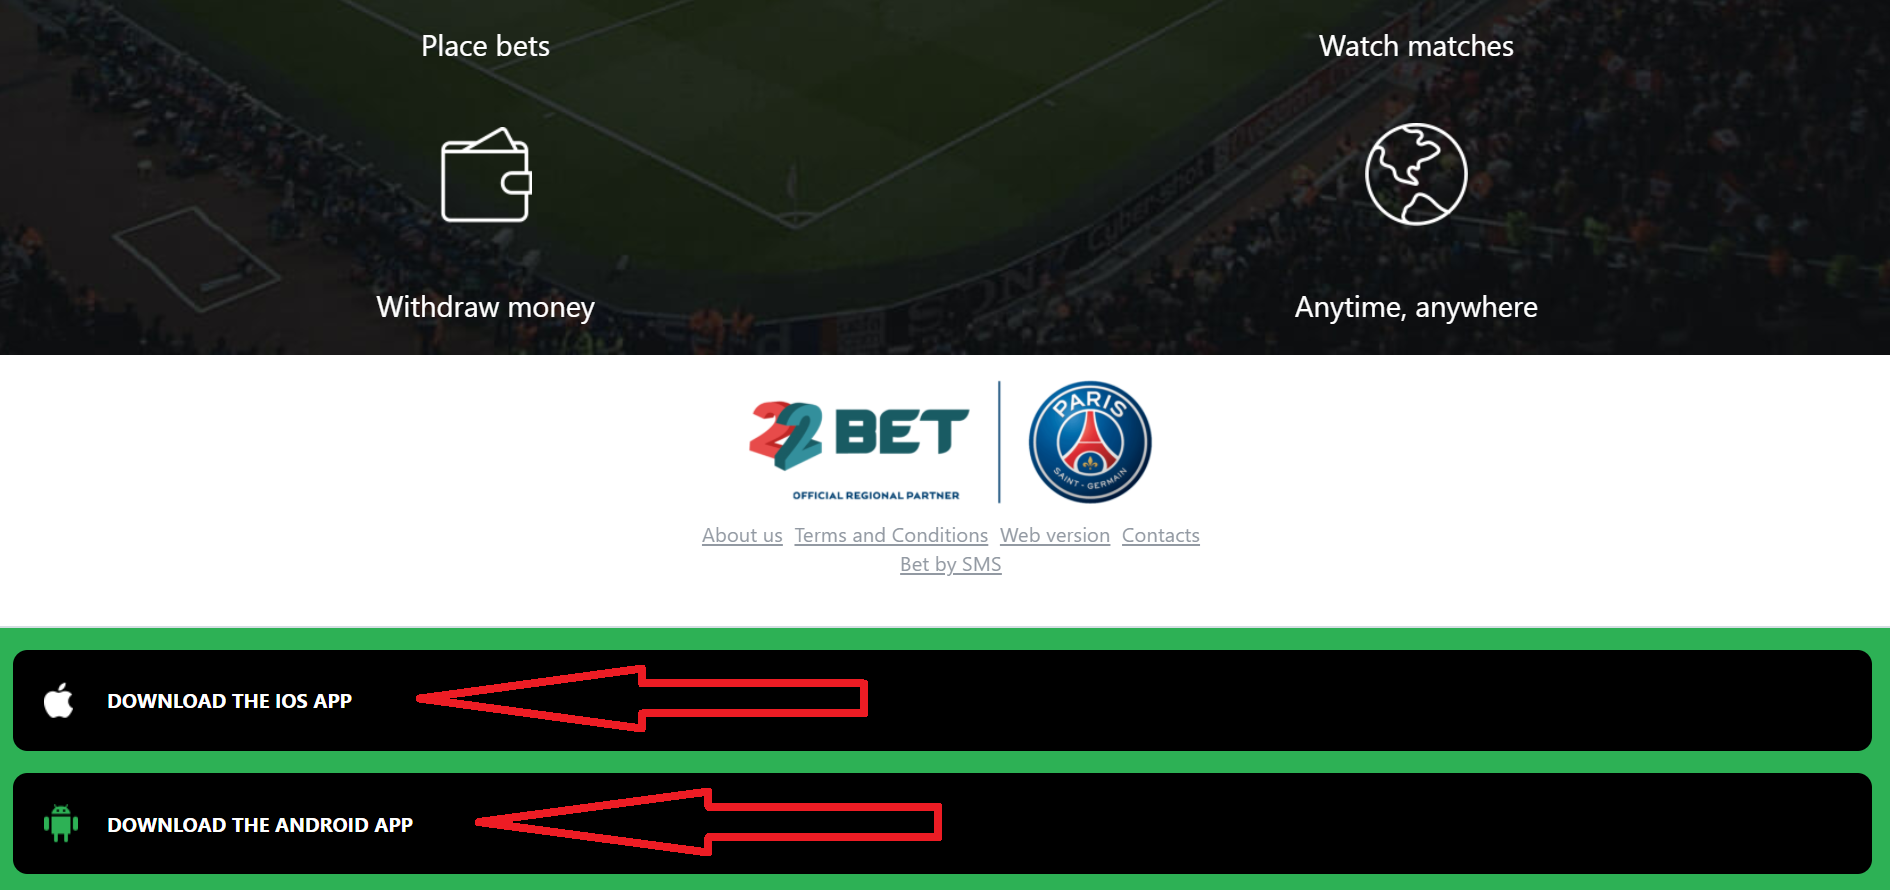 Top facts how to register 22bet via SMS